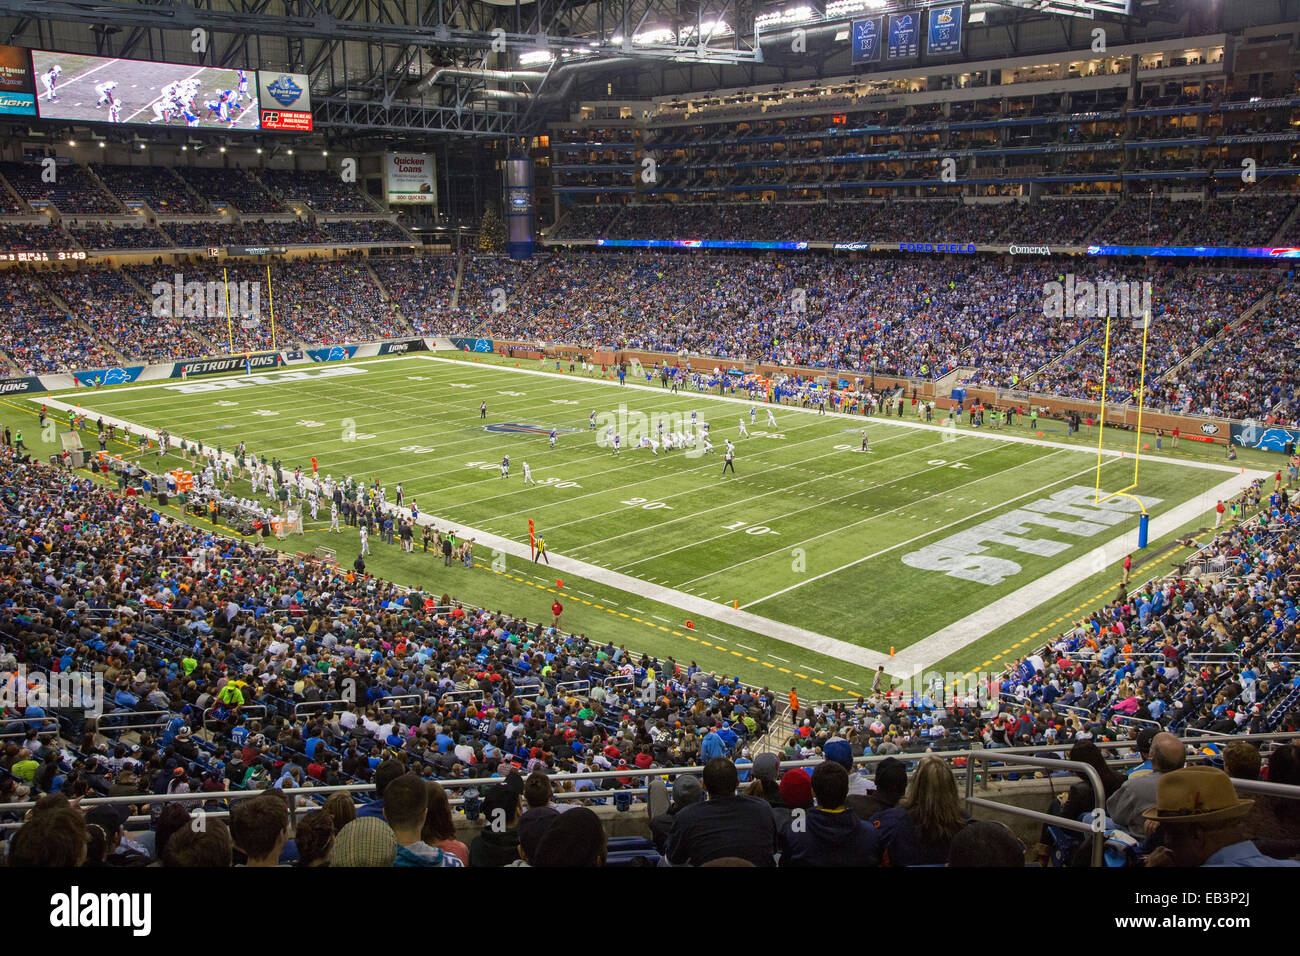 Detroit, Michigan - The Buffalo Bills play the New York Jets in a National Football League game at Ford Field. - Stock Image